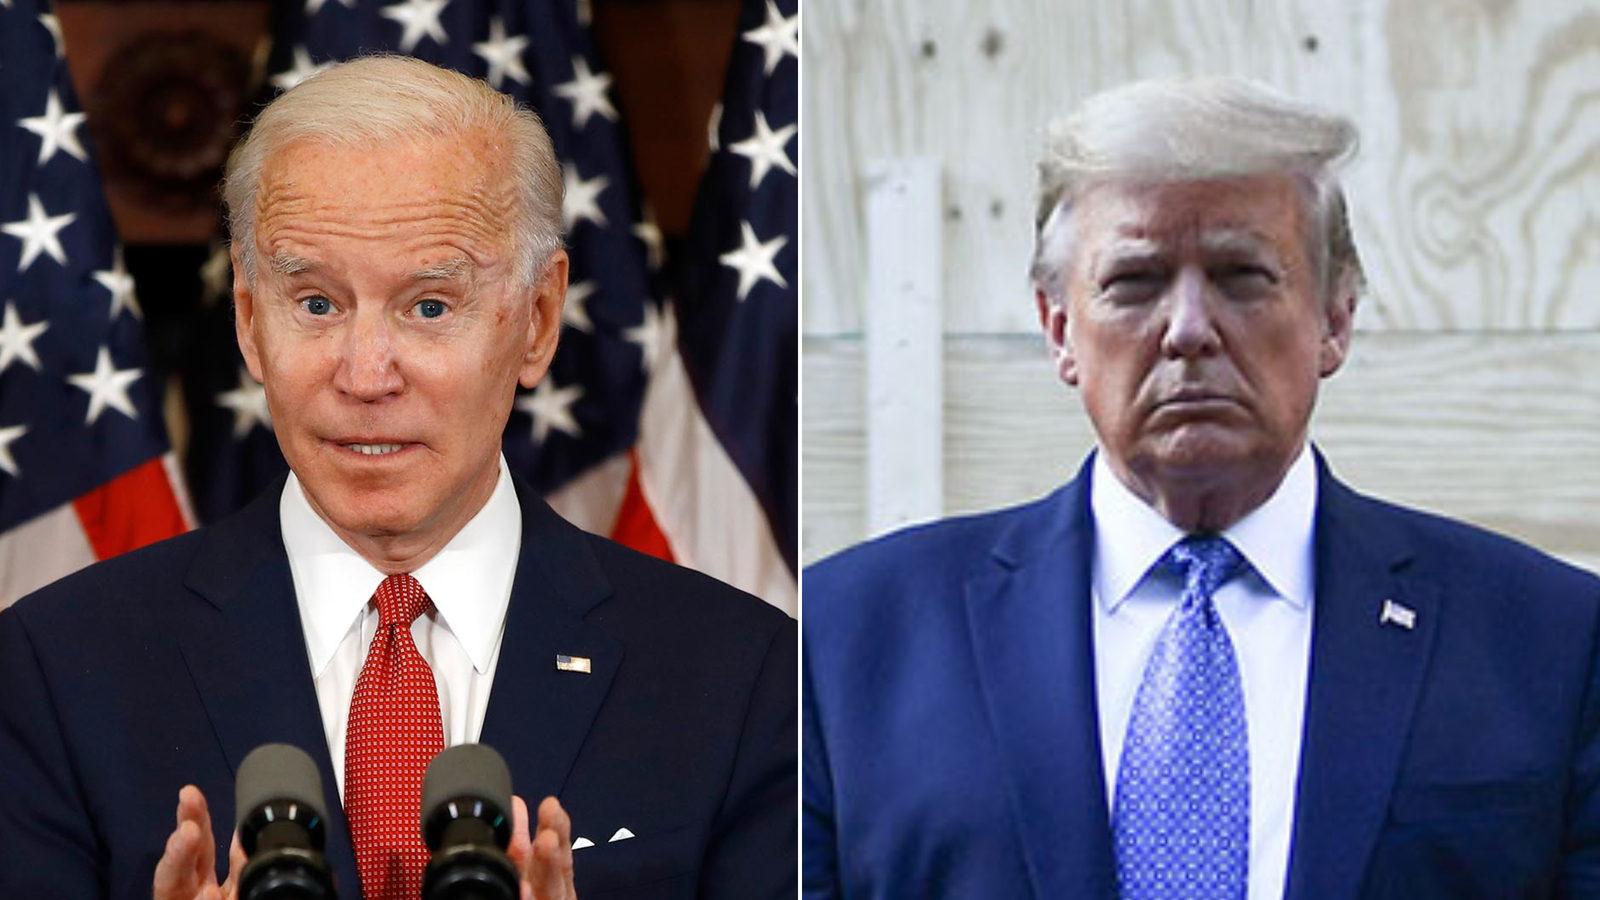 Trump's new line of attack on Biden is an old campaign standby